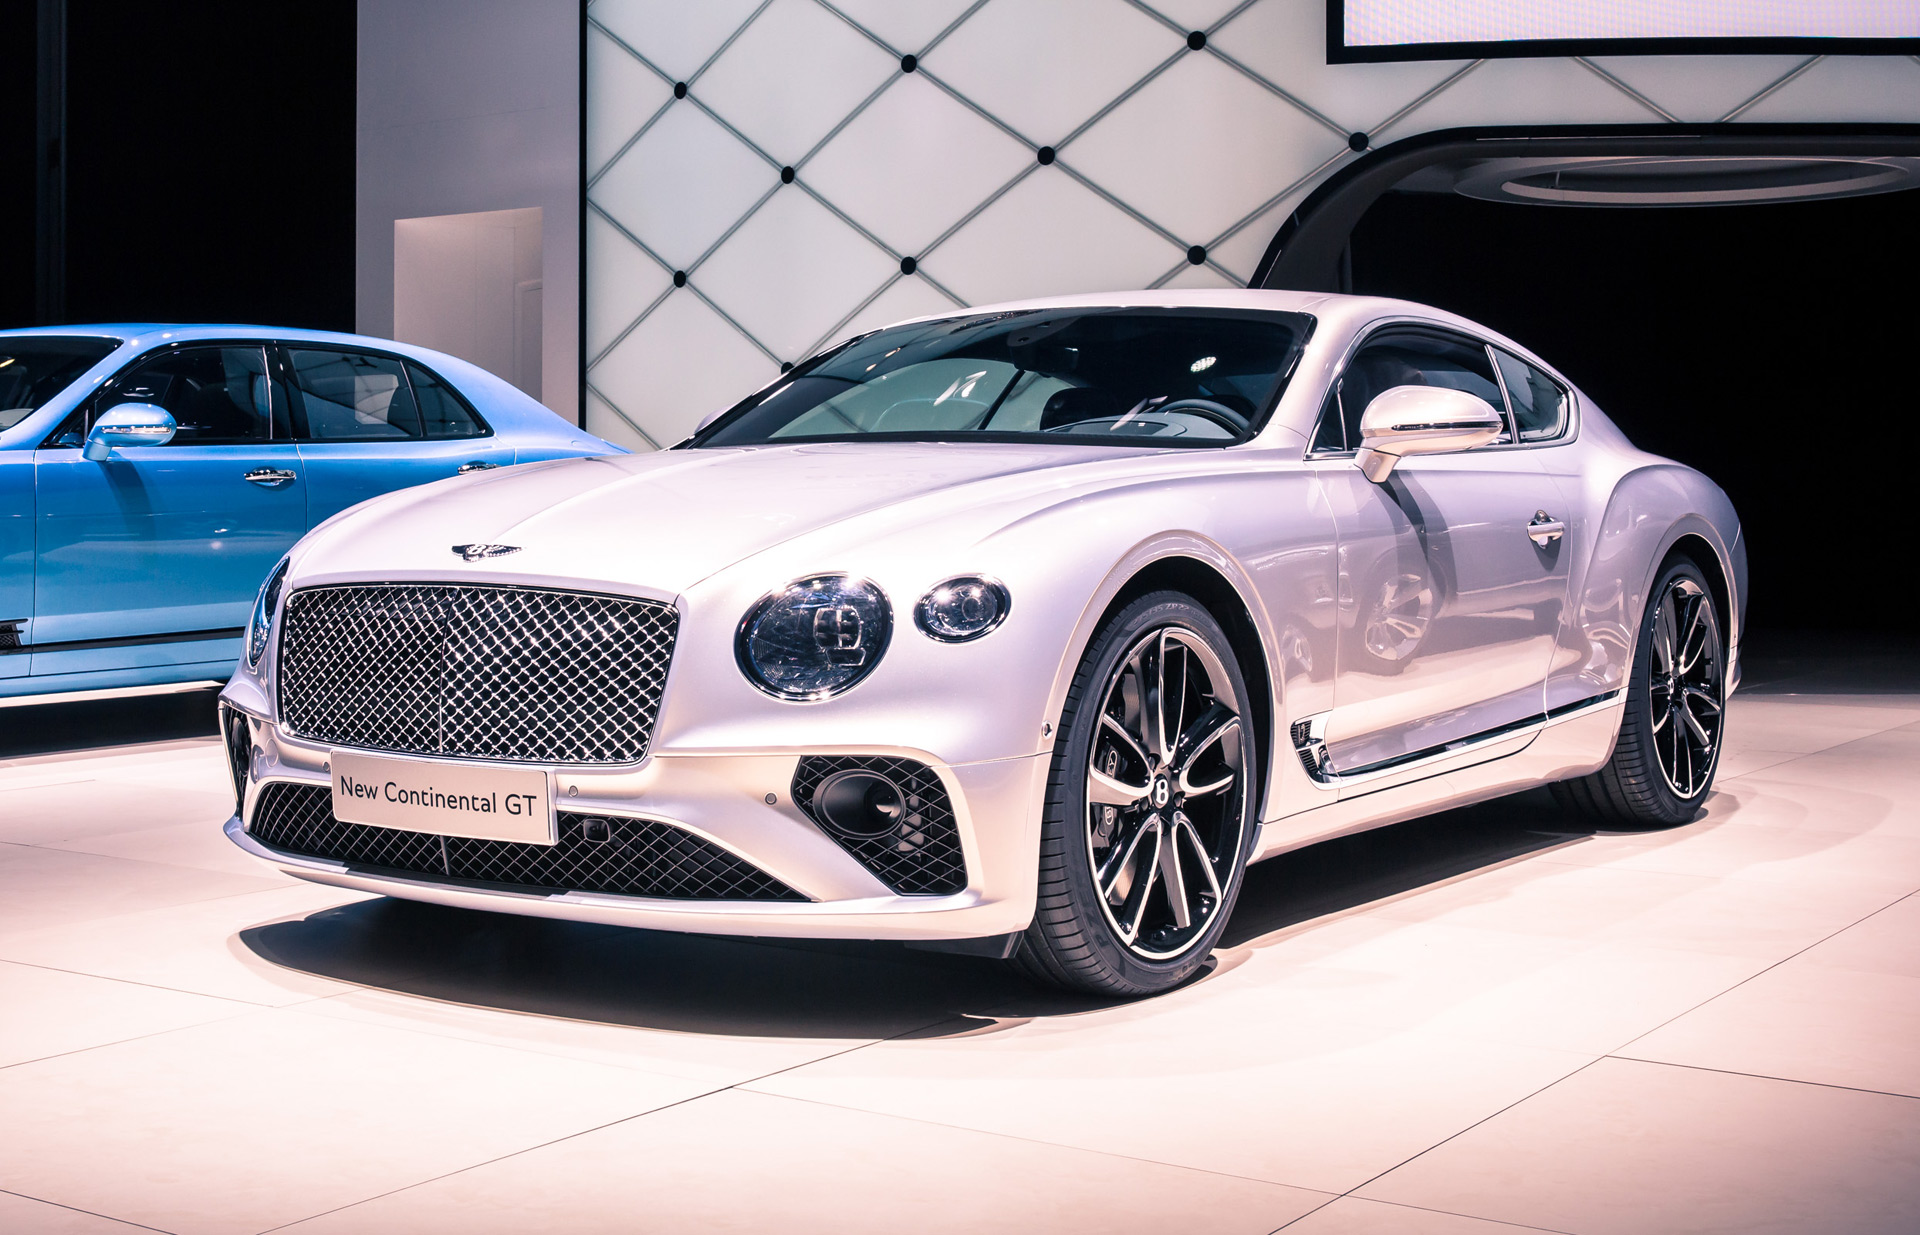 bentley continental new model 2018 with 2019 Bentley Continental Gt Arrives Beauty Power on New Audi Rsd Concept By Steel Drake besides Exoticlimo furthermore Ferrari 812 Superfast Mr Group Will Realize Official Model 118 Scale together with 2004 BENTLEY CONTINENTAL GT COUPE 181115 likewise Huracan Performante Geneva Motor Show Model 143 Looksmart.